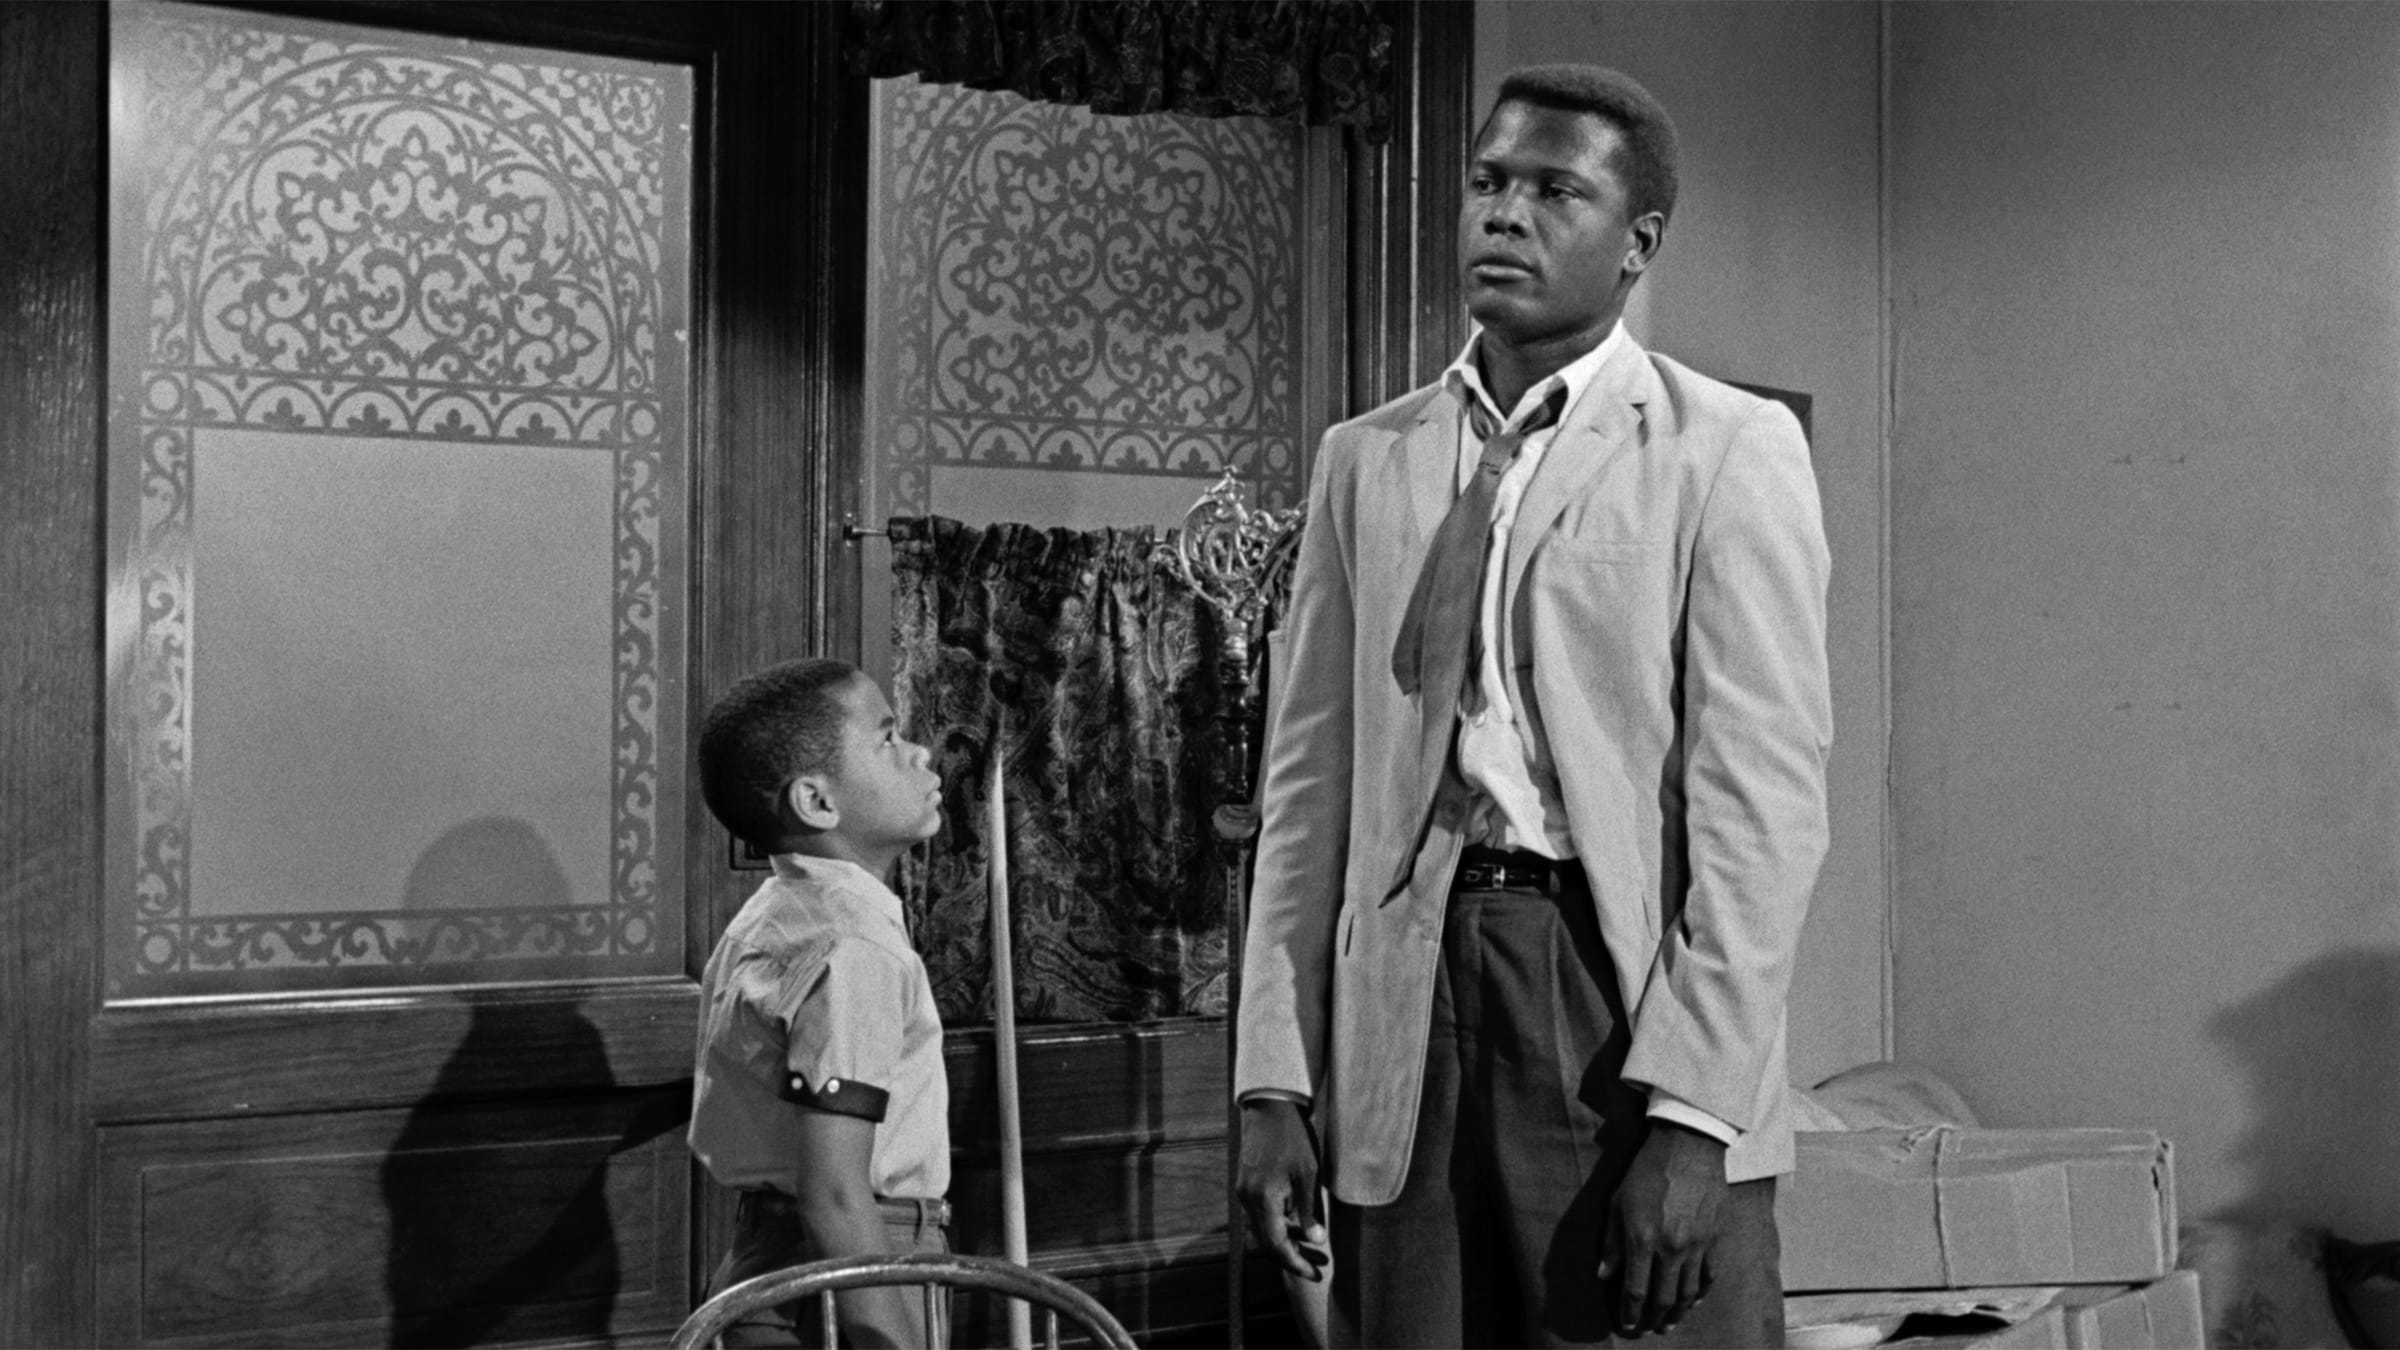 Paper Essay When A Raisin In The Sun Premiered At The Cannes Film Festival In May   Foreign Audiences Could Not Understand Why The Youngers Wanted To Leave  Their  The Yellow Wallpaper Essay also Essay Writing High School Mutations Of Memory In Hiroshima Mon Amour  The Current  The  Essay On Pollution In English